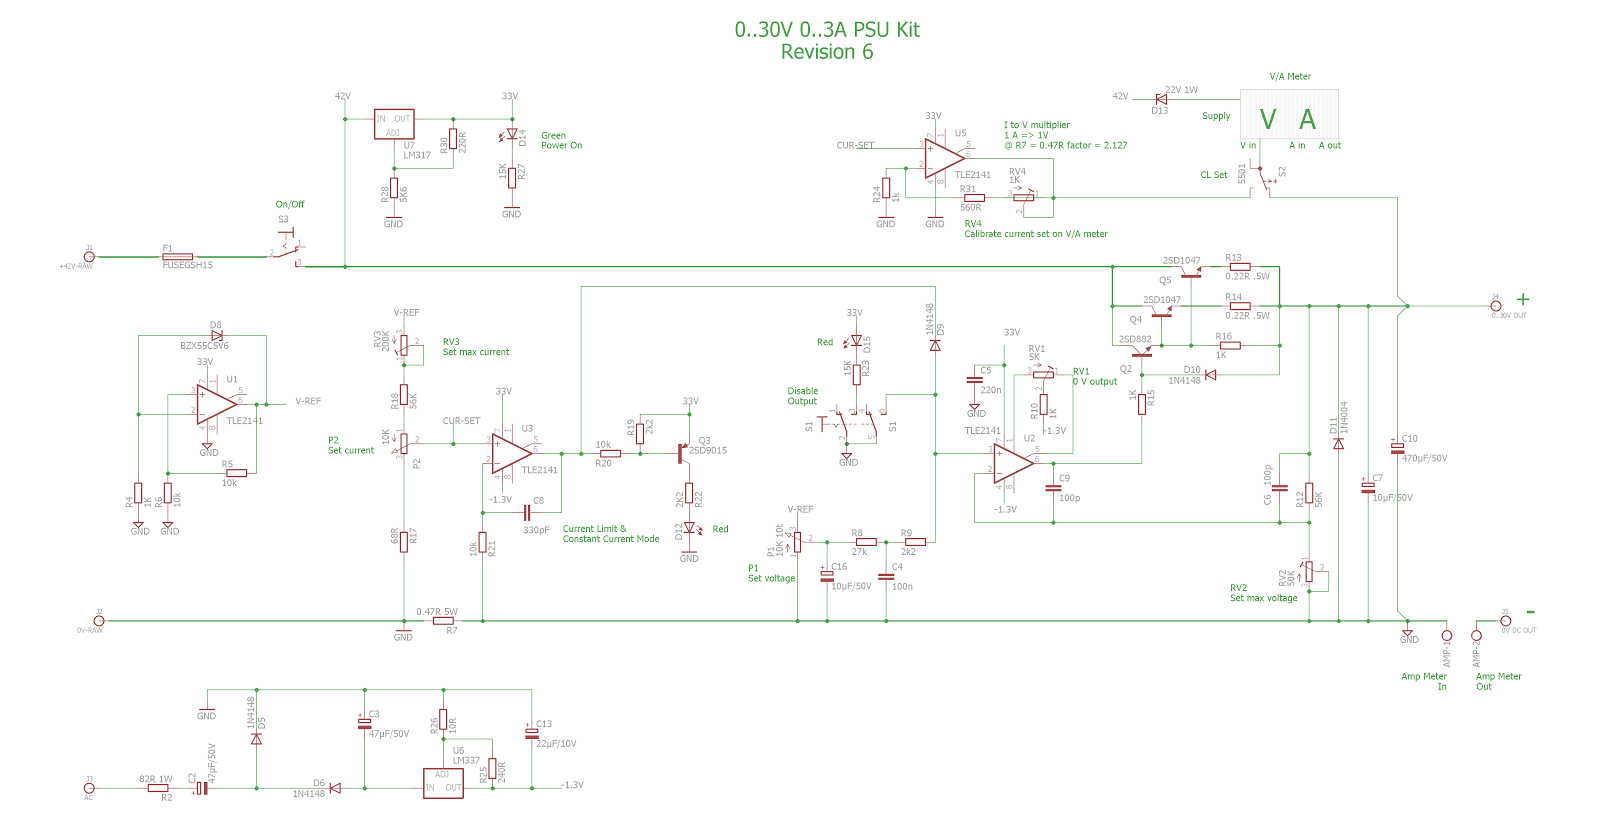 paul s diy electronics blog tuning a 0 30v dc 0 3a psu diy kit 3v 30v 3a adjustable regulated power supply circuit diagram [ 1600 x 822 Pixel ]